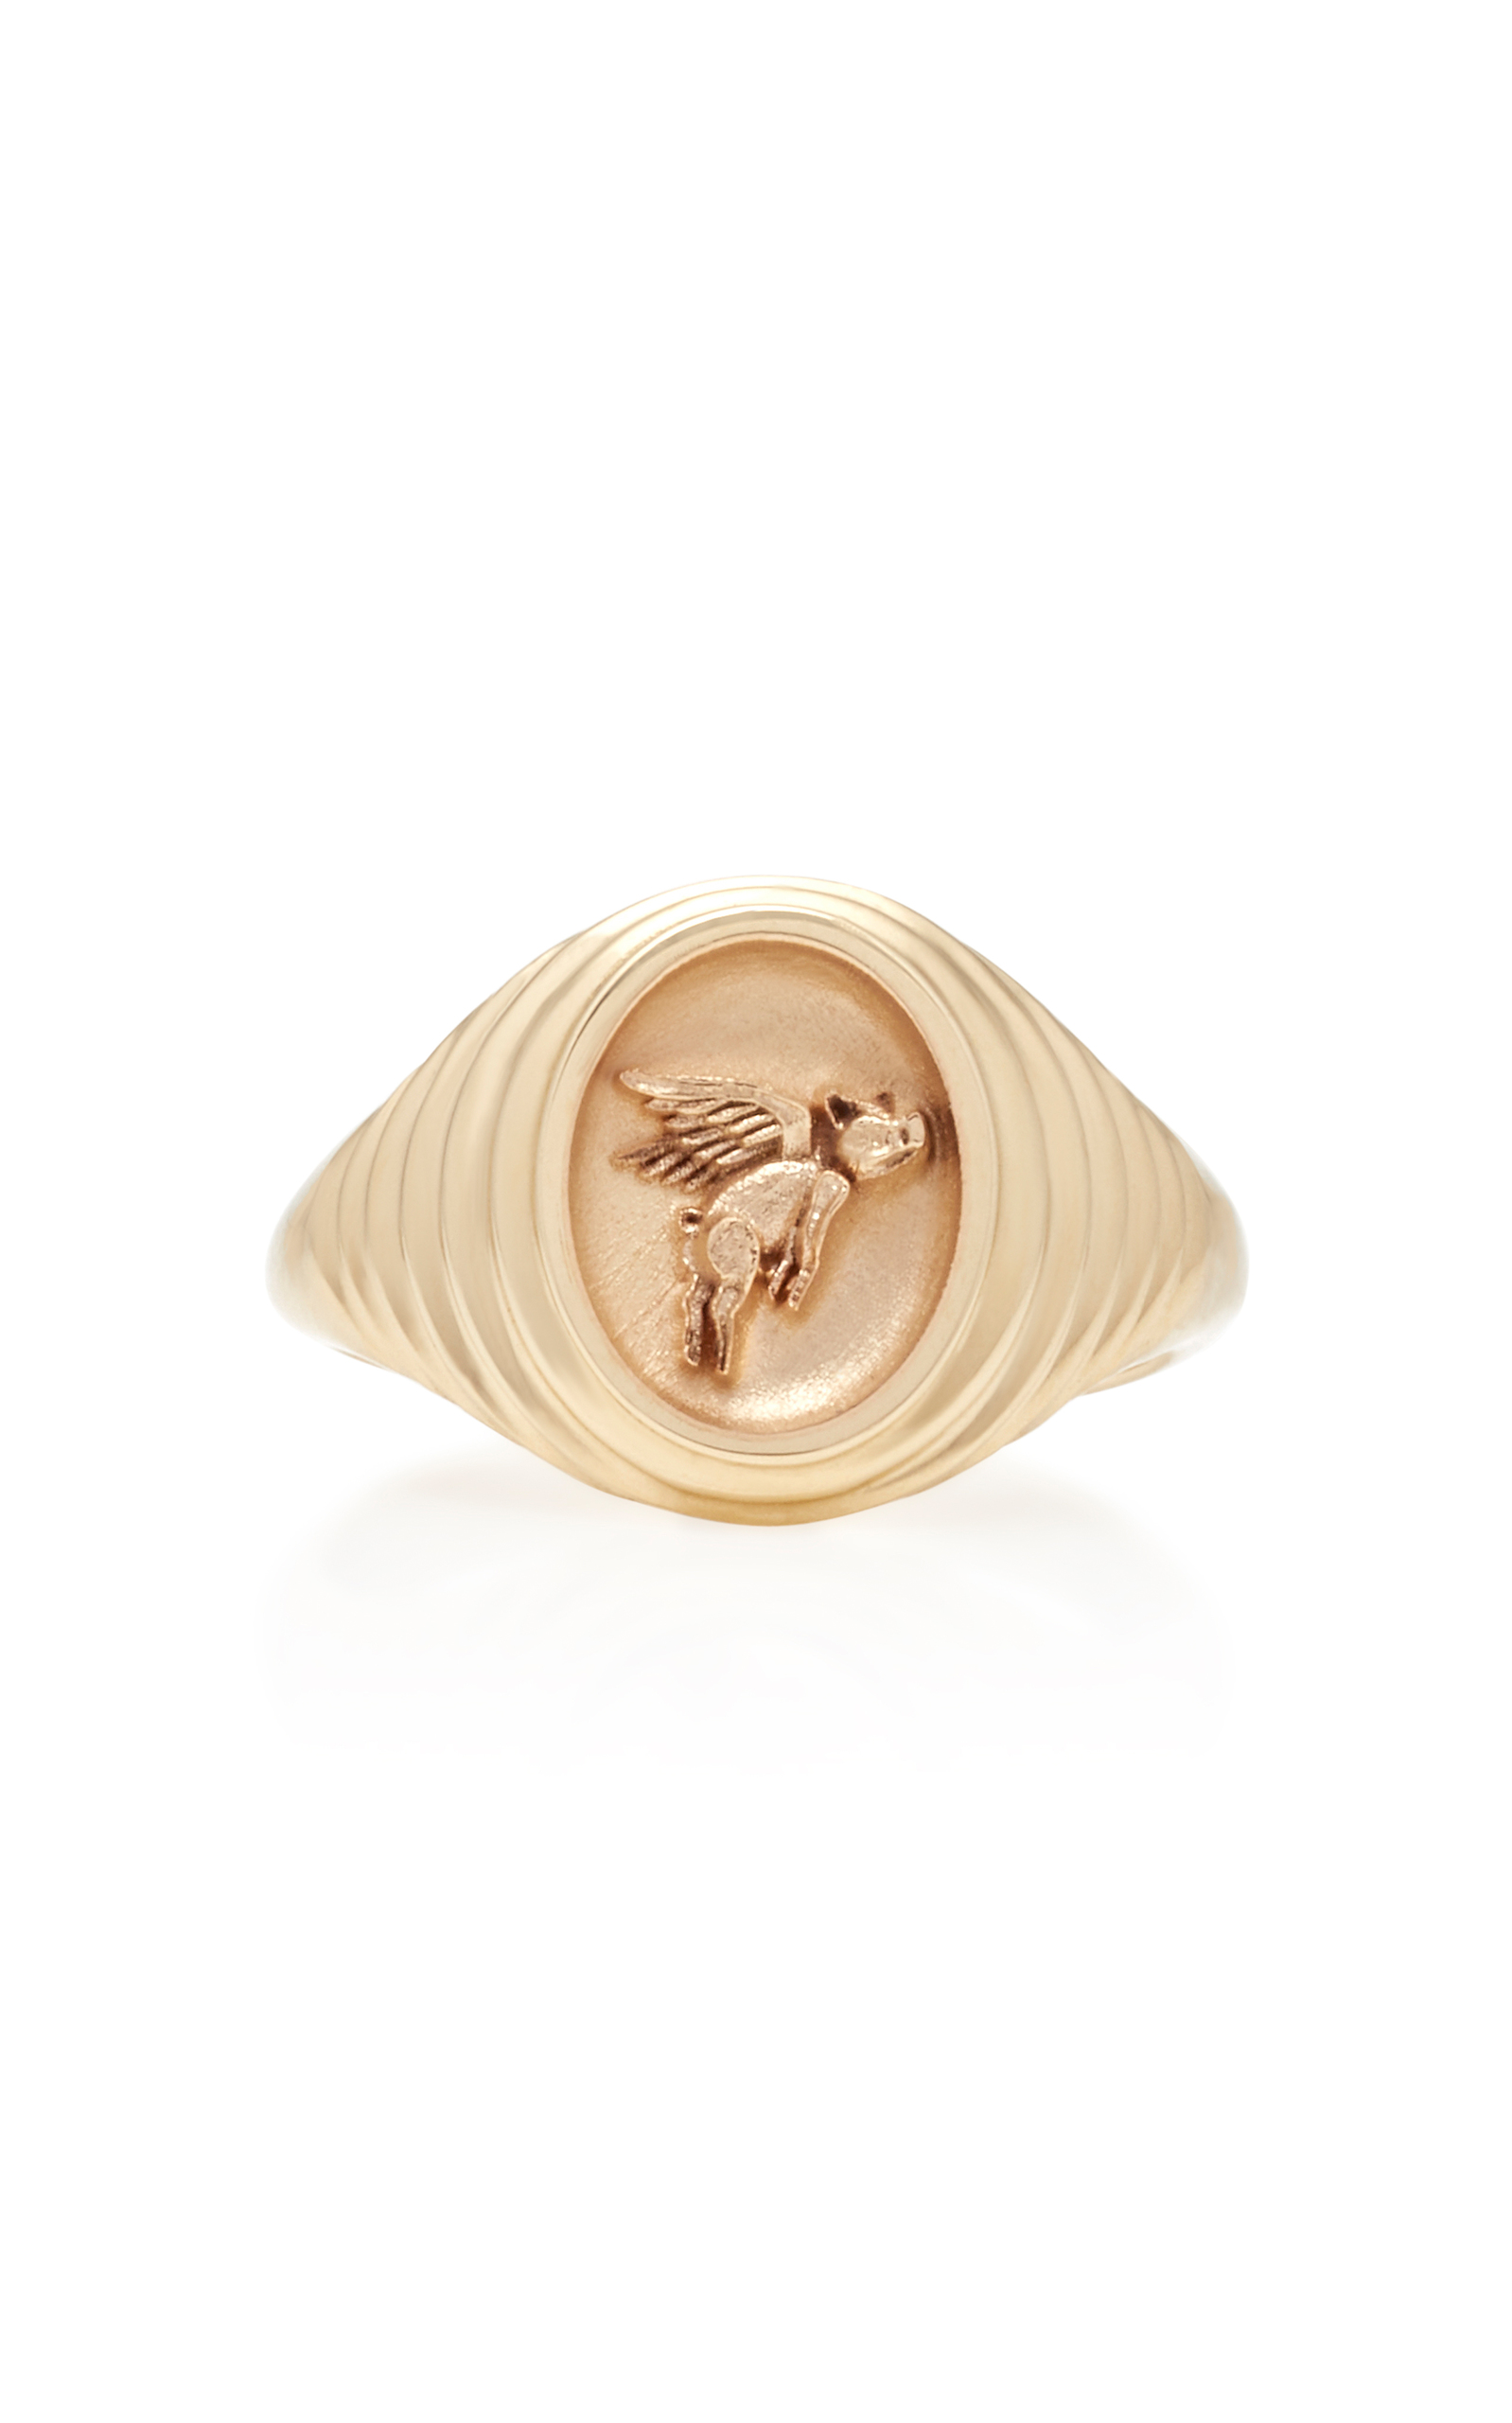 flying pig signet ring Retrouvai